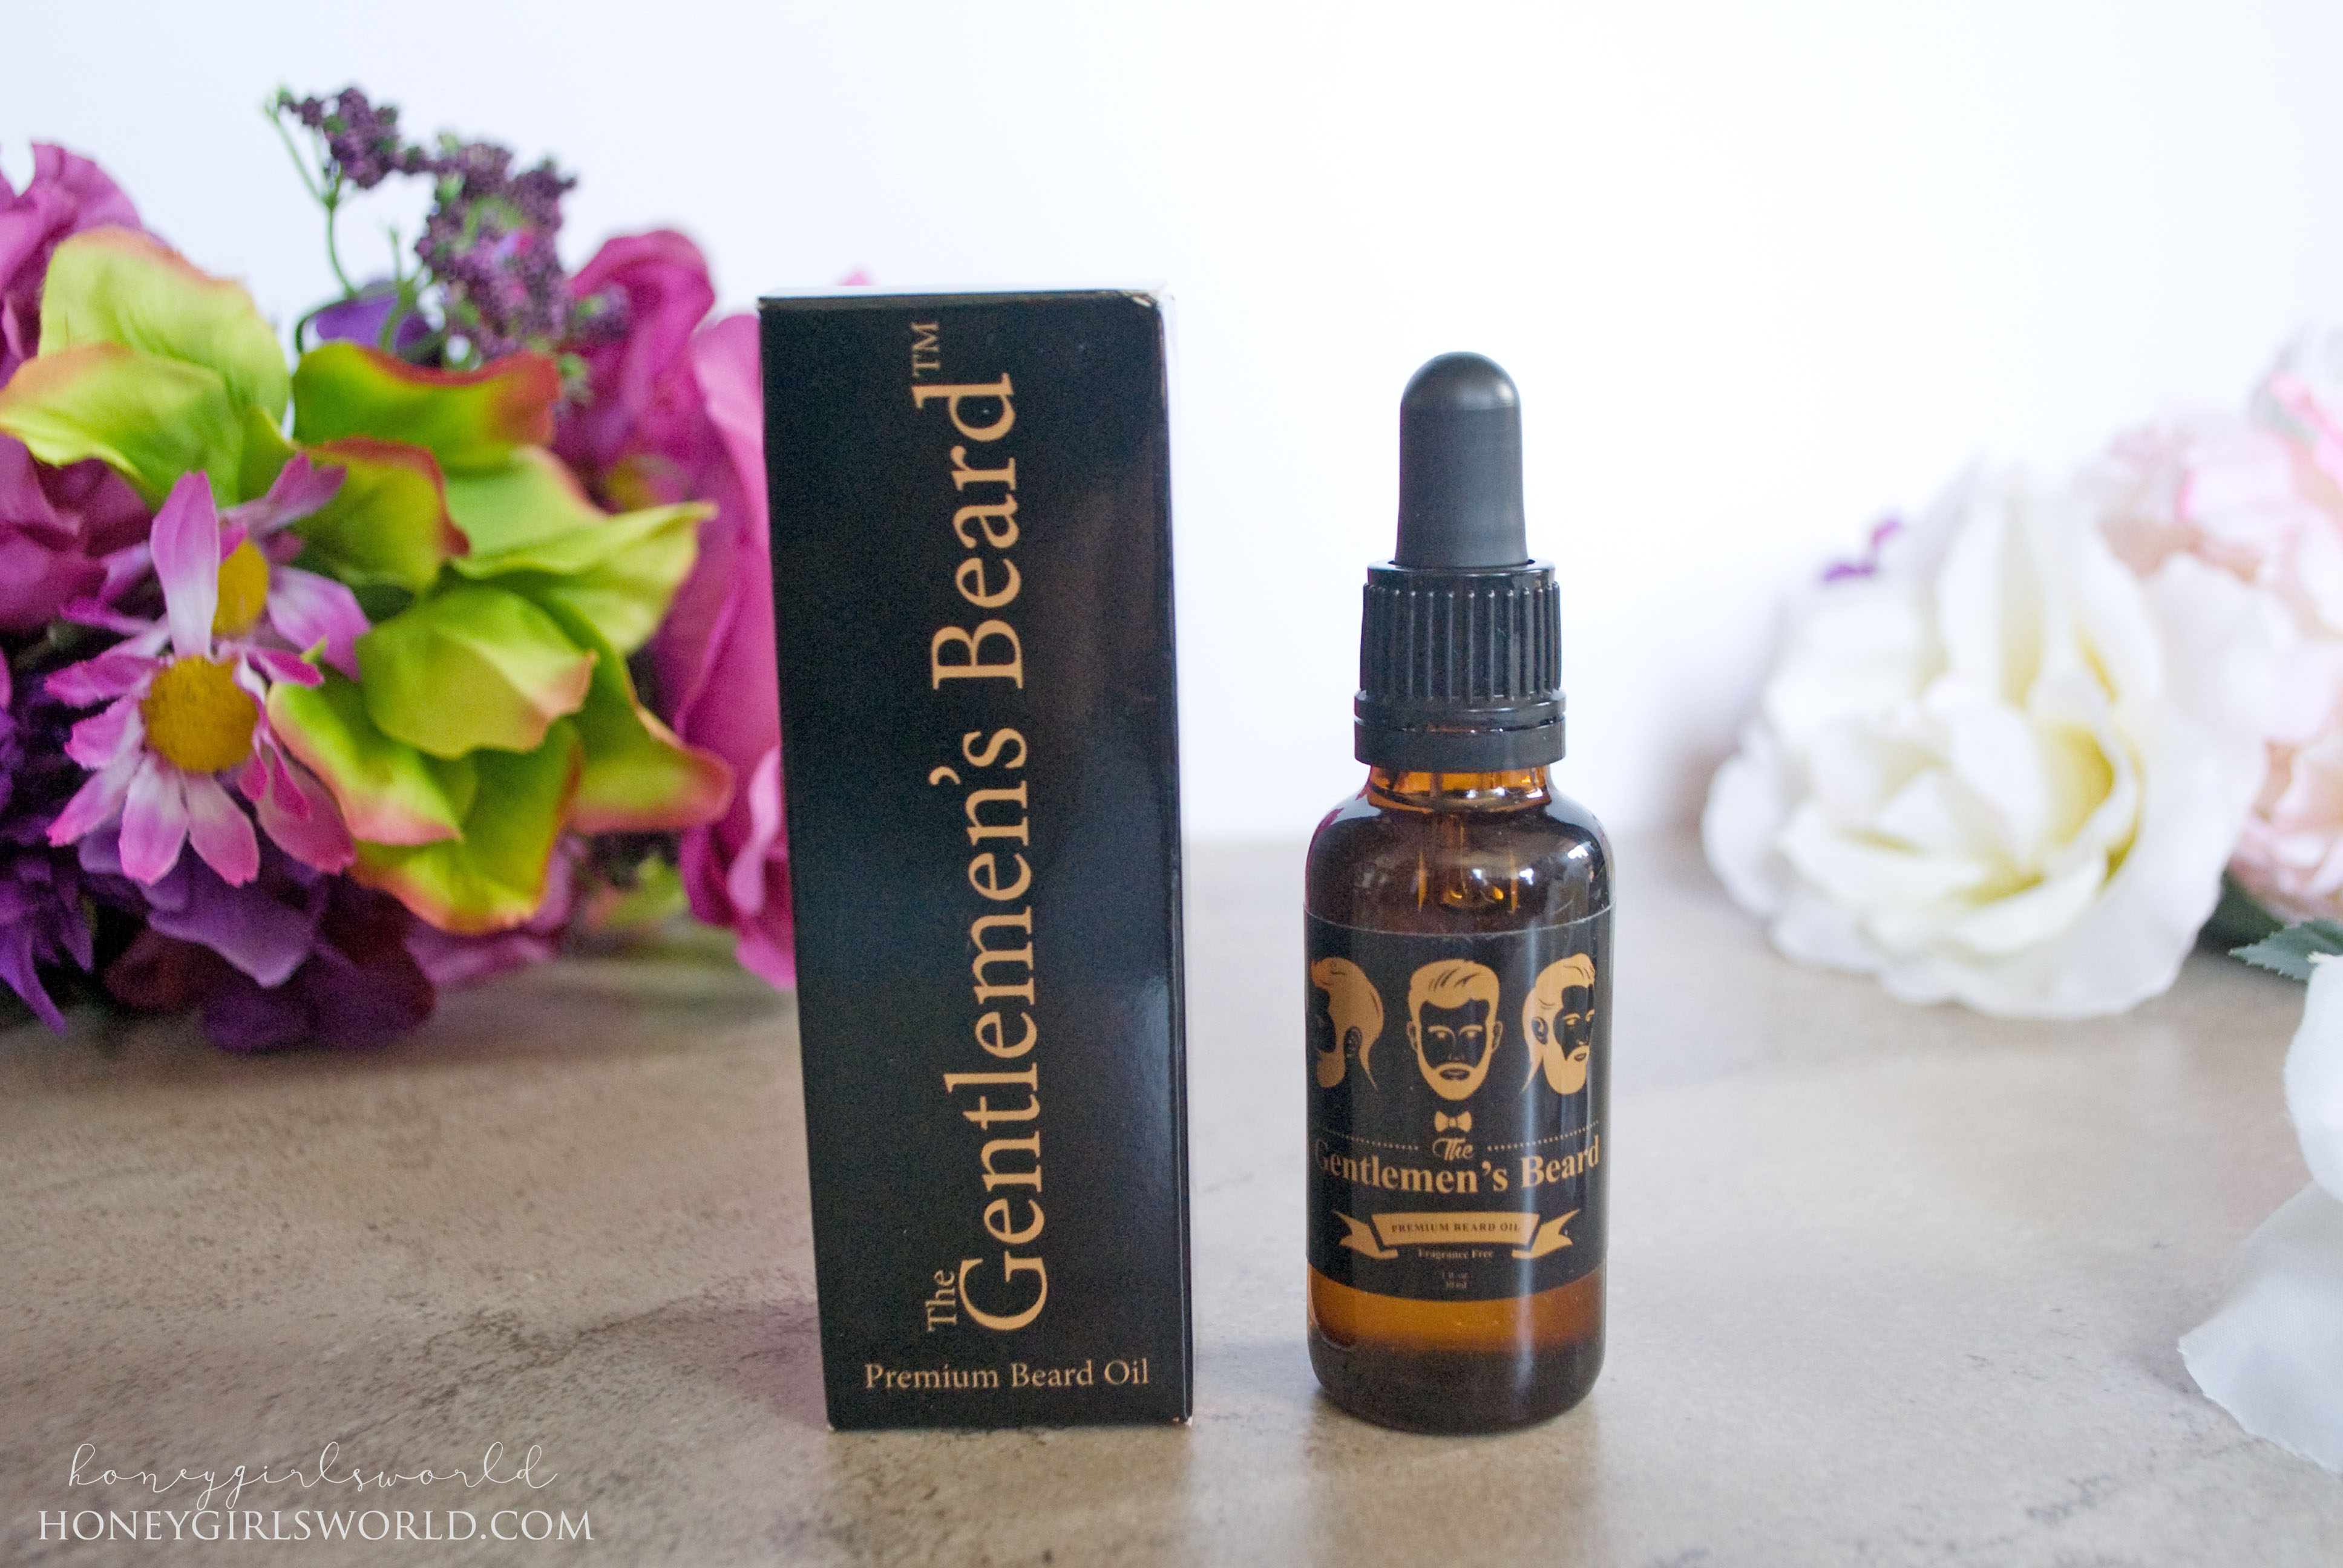 Review – The Gentlemen's Beard Oil and Conditioner